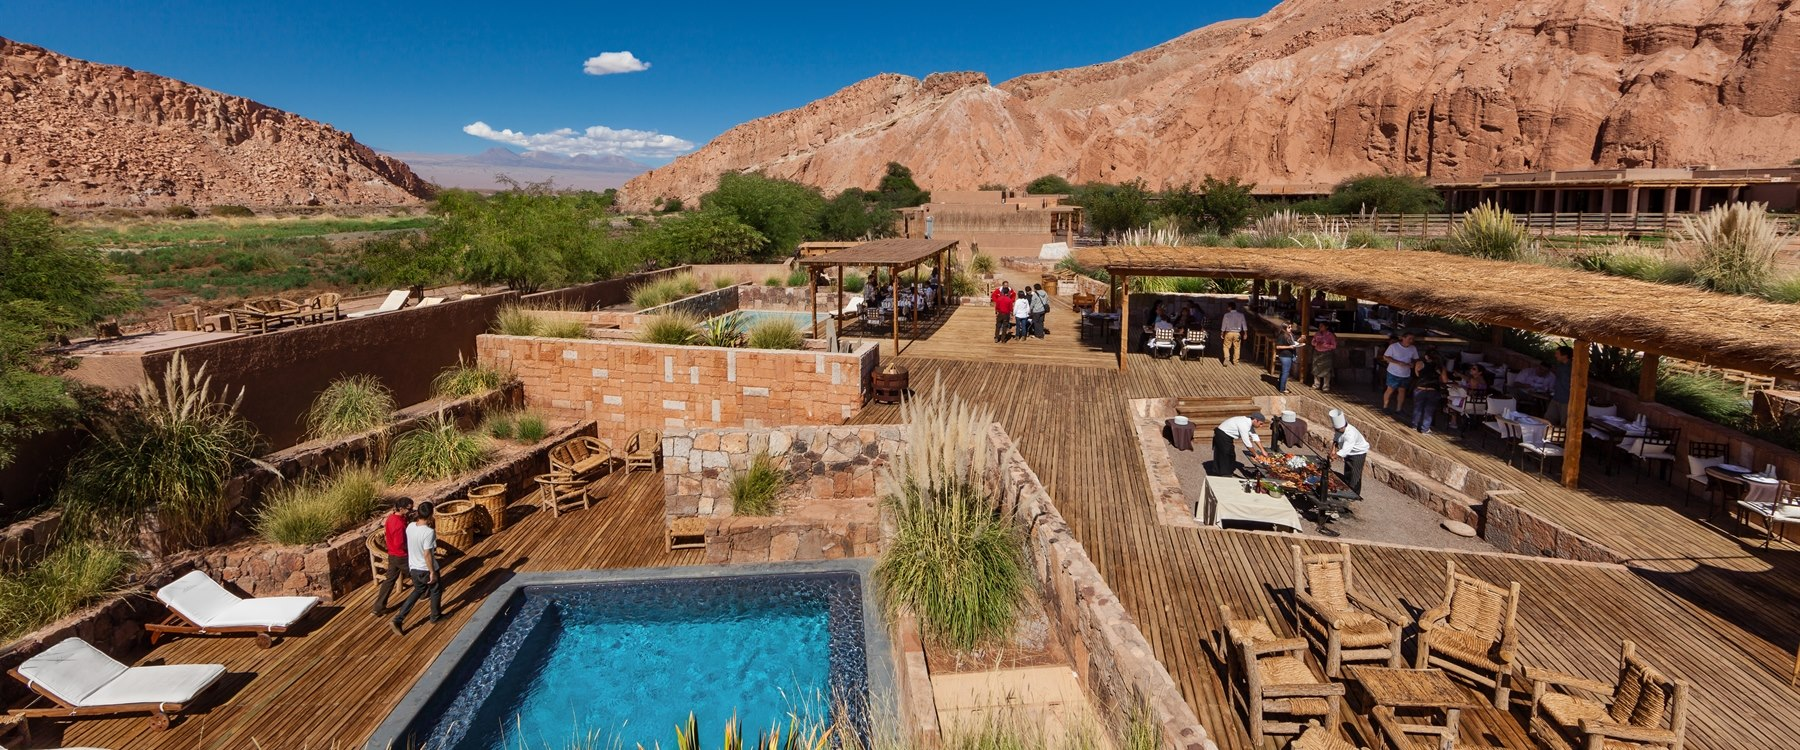 Pool area at alto atacama, Chile